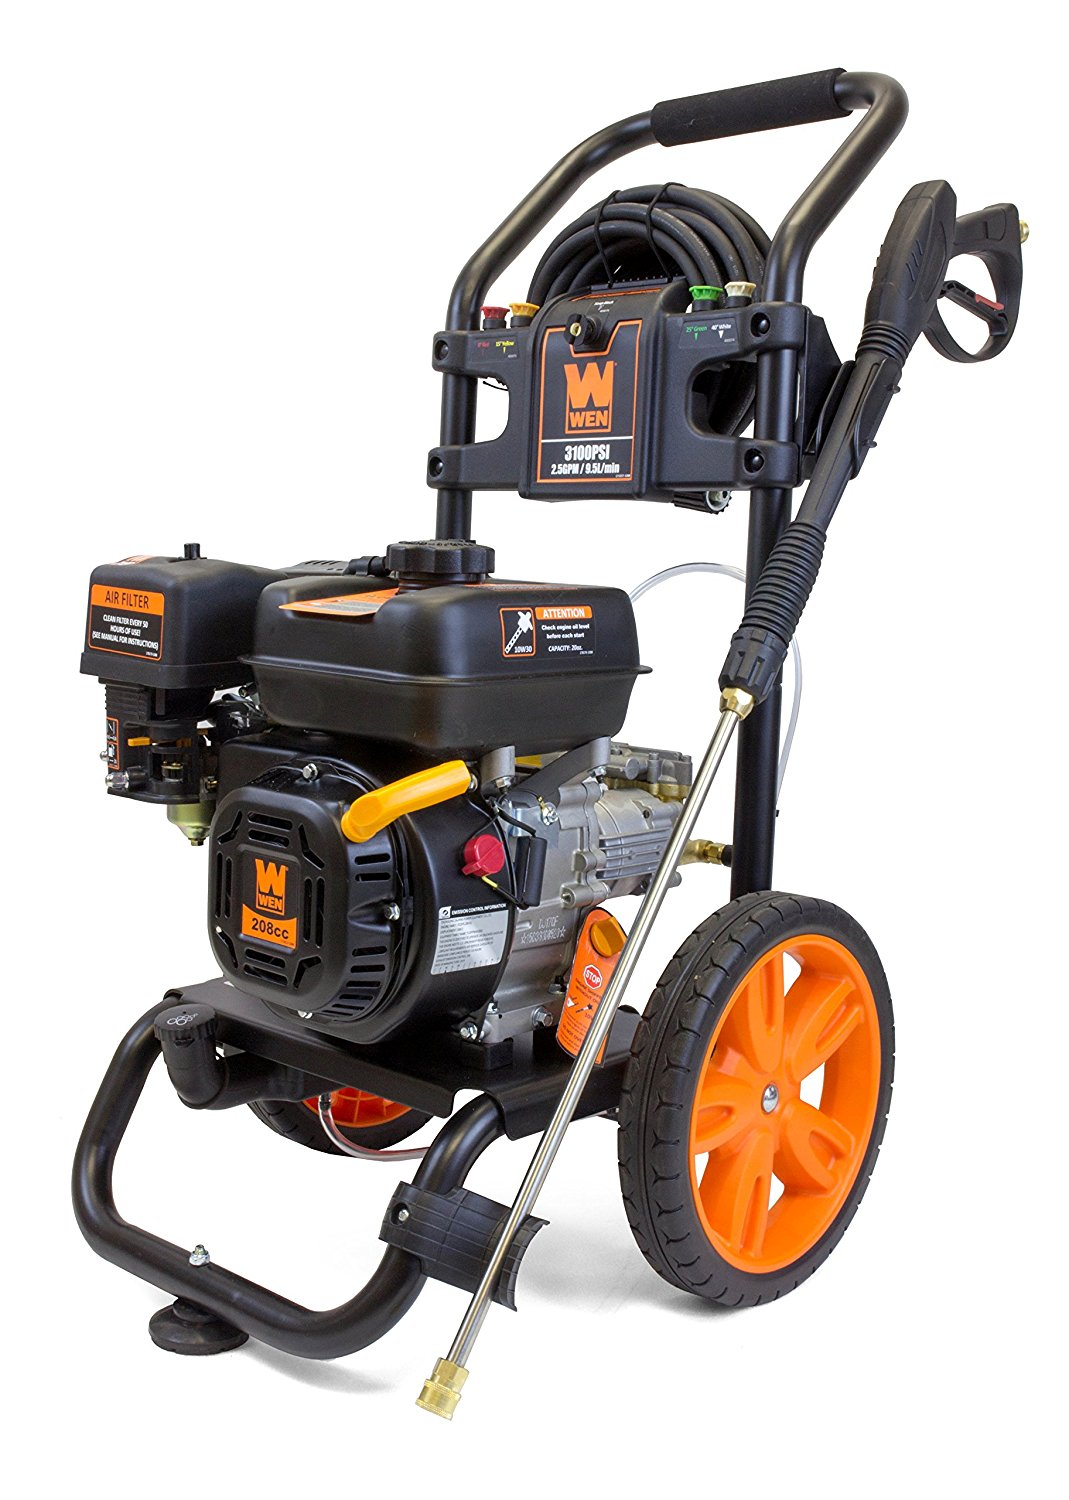 best gas power washer: This option can save you money!